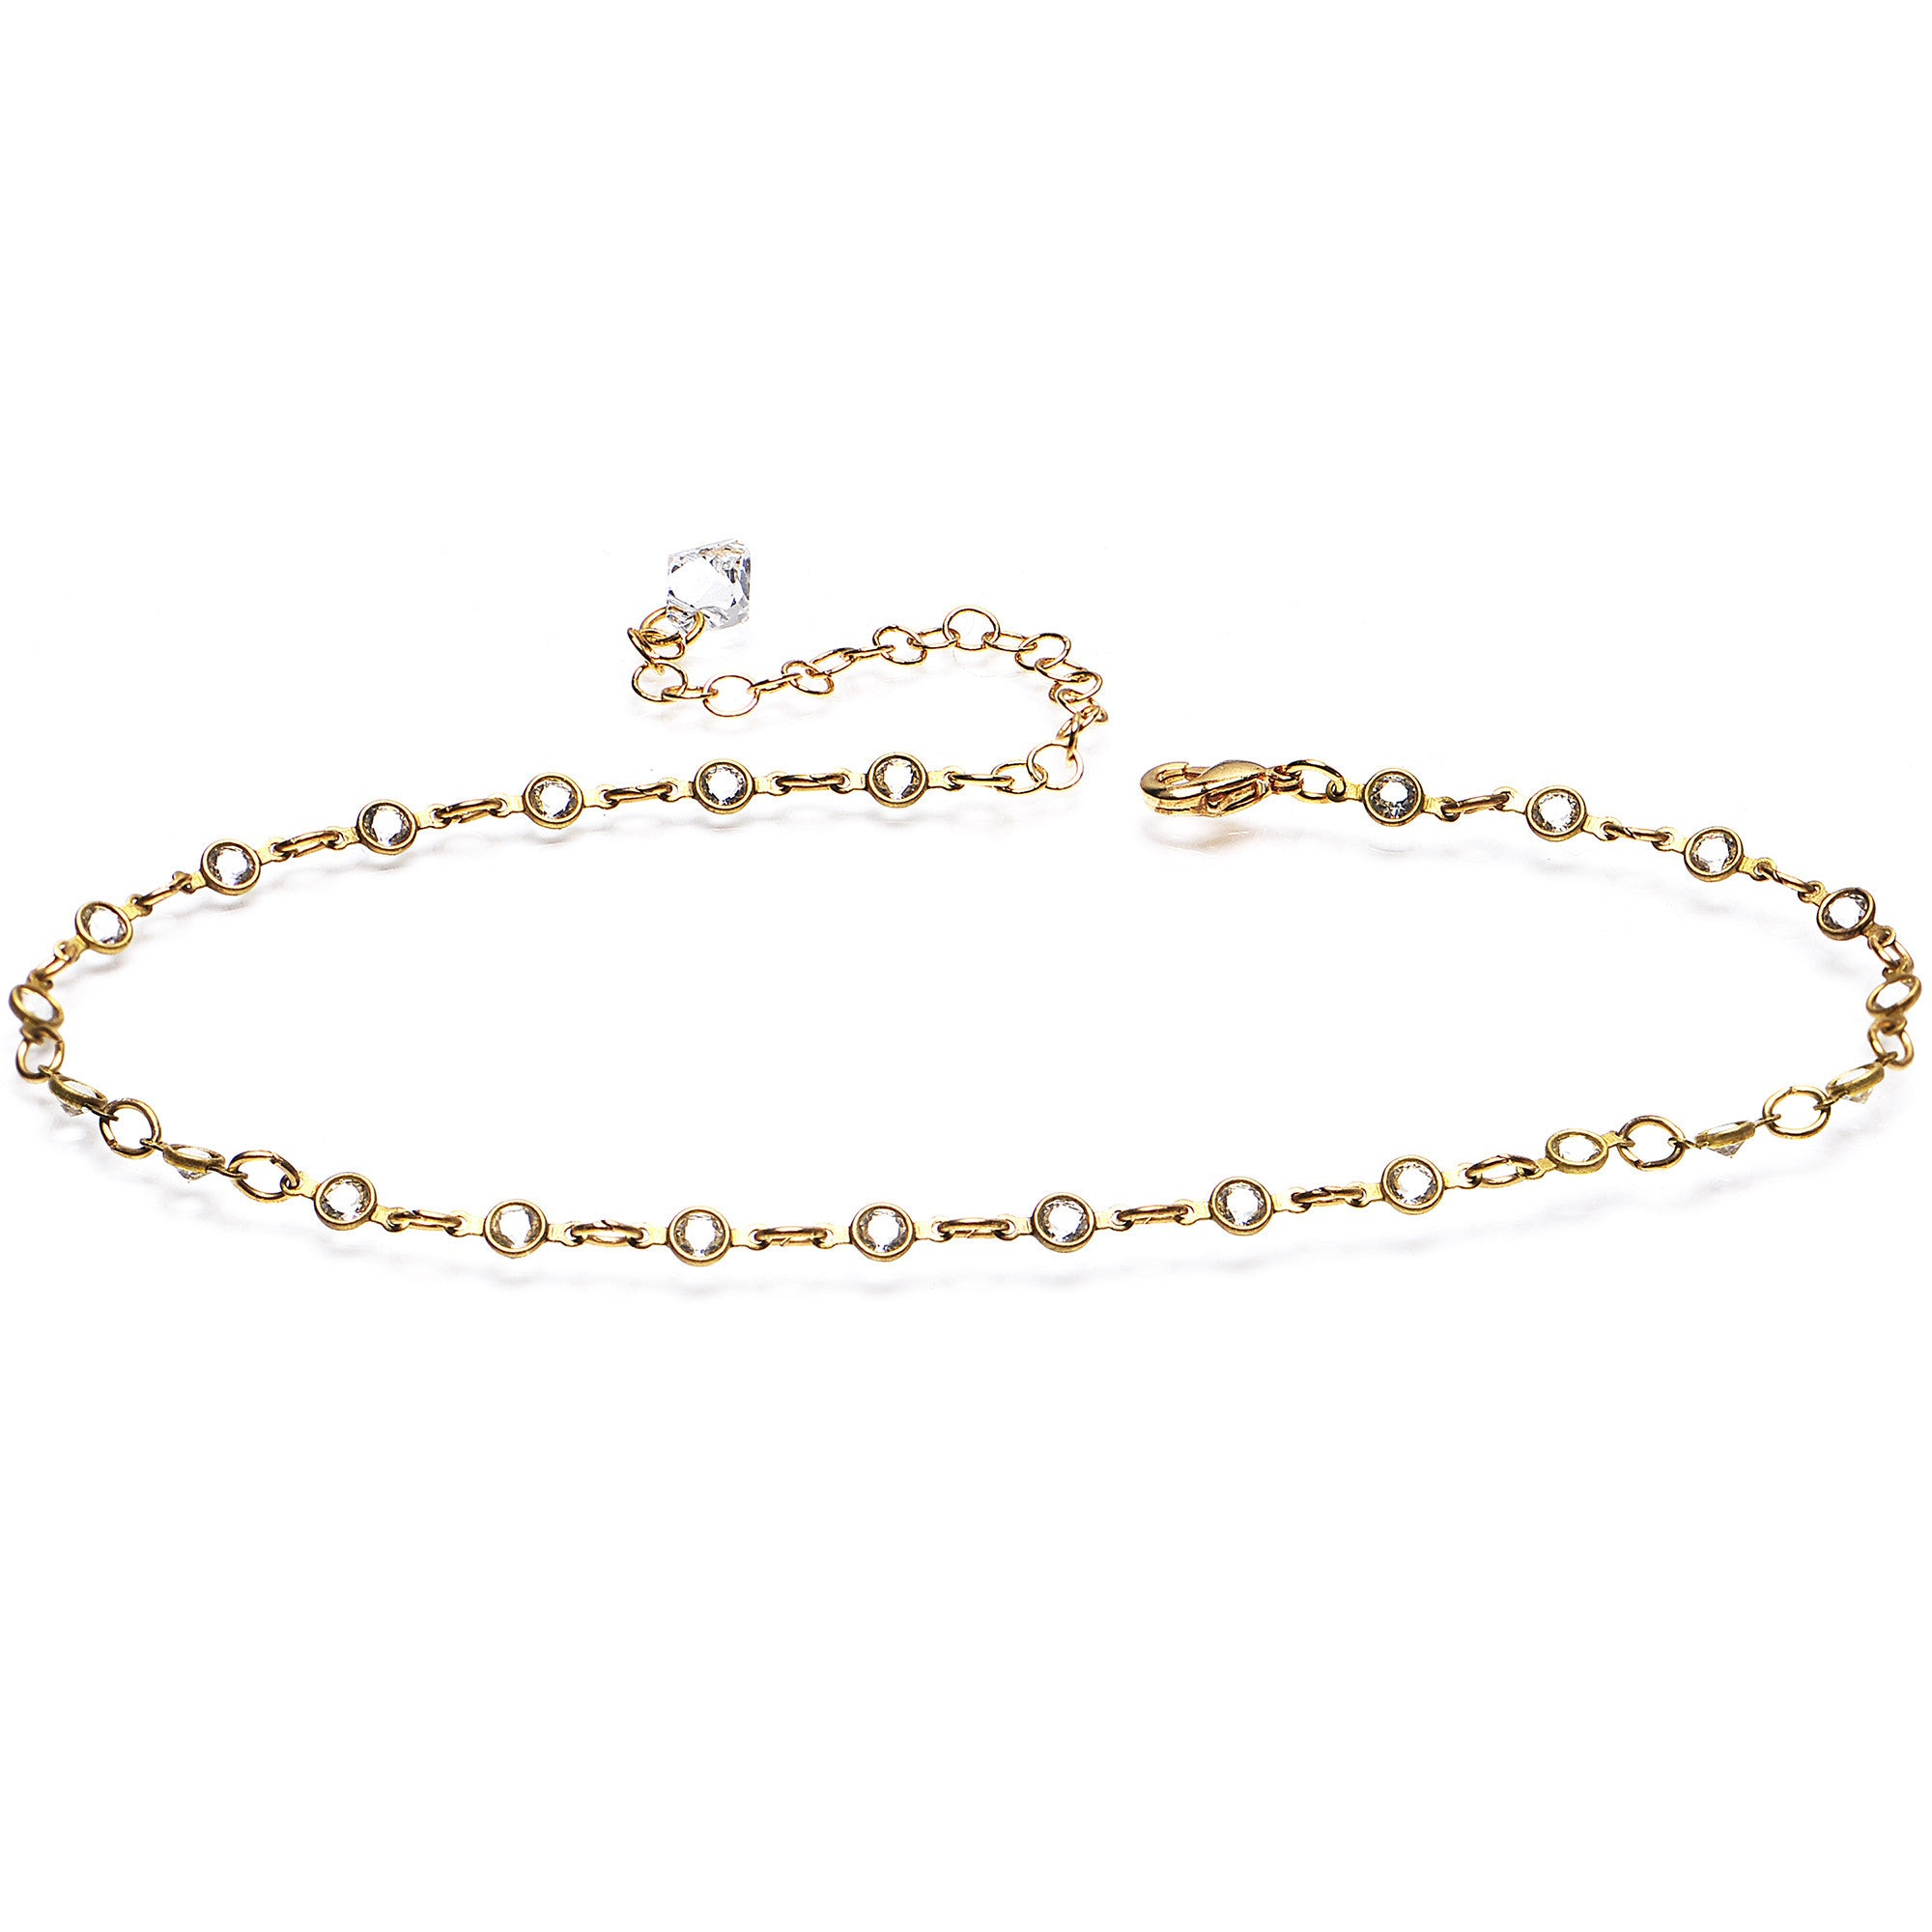 star gold bracelet melissa shopify jewellery diamond products full white harris anklet